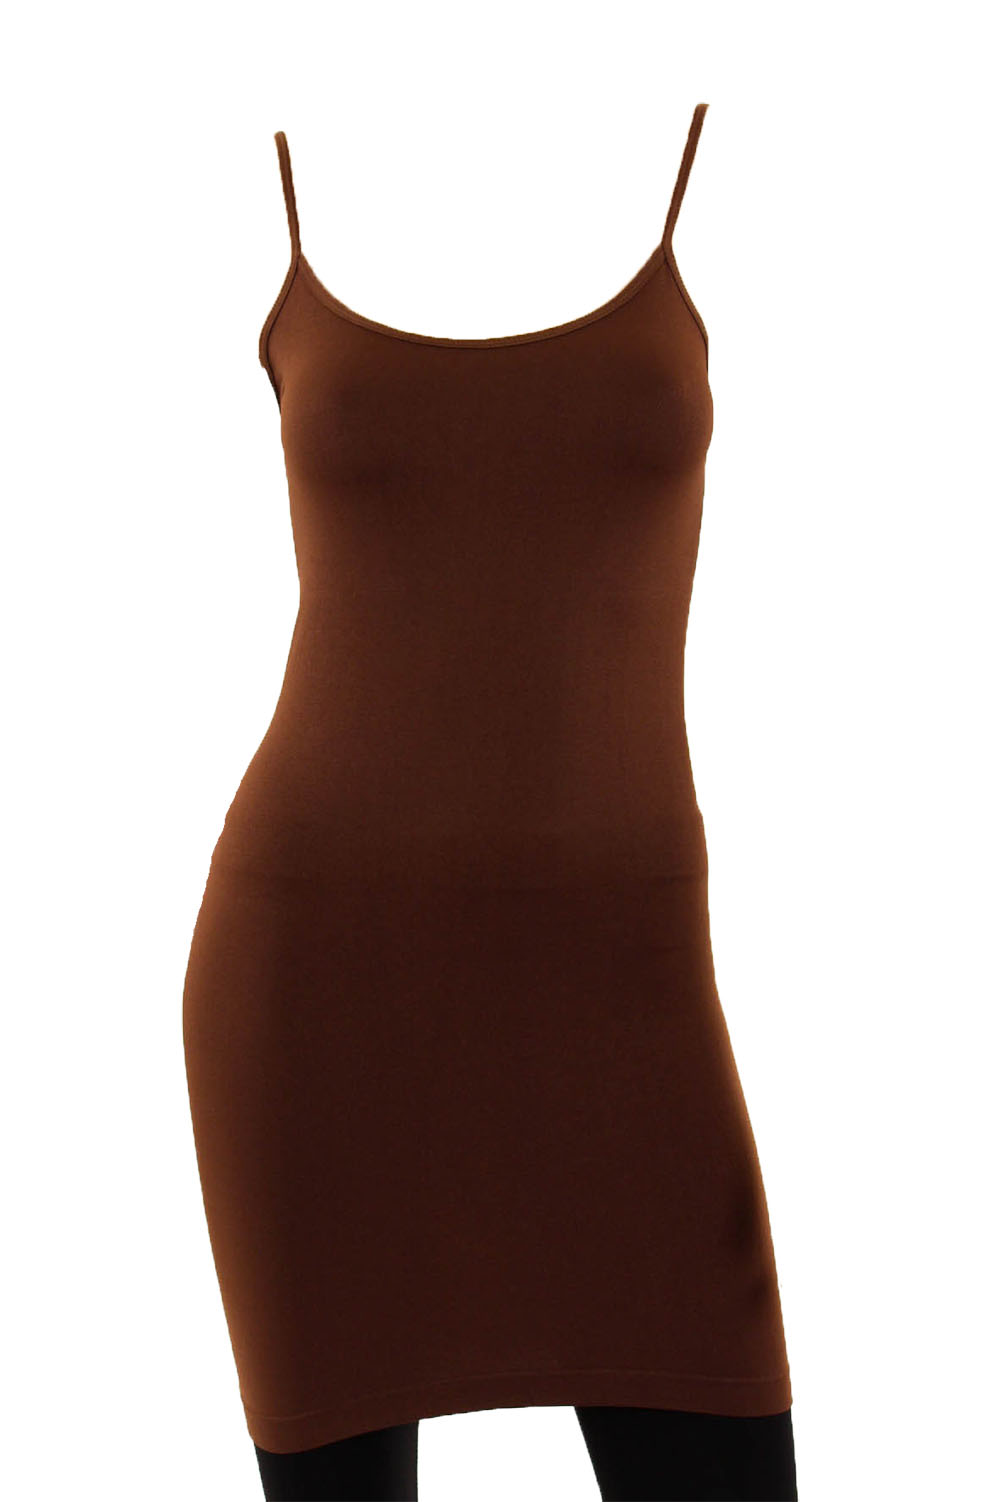 Musa Women's Extra Long Spaghetti Strap Stretch Camisole Tank Top